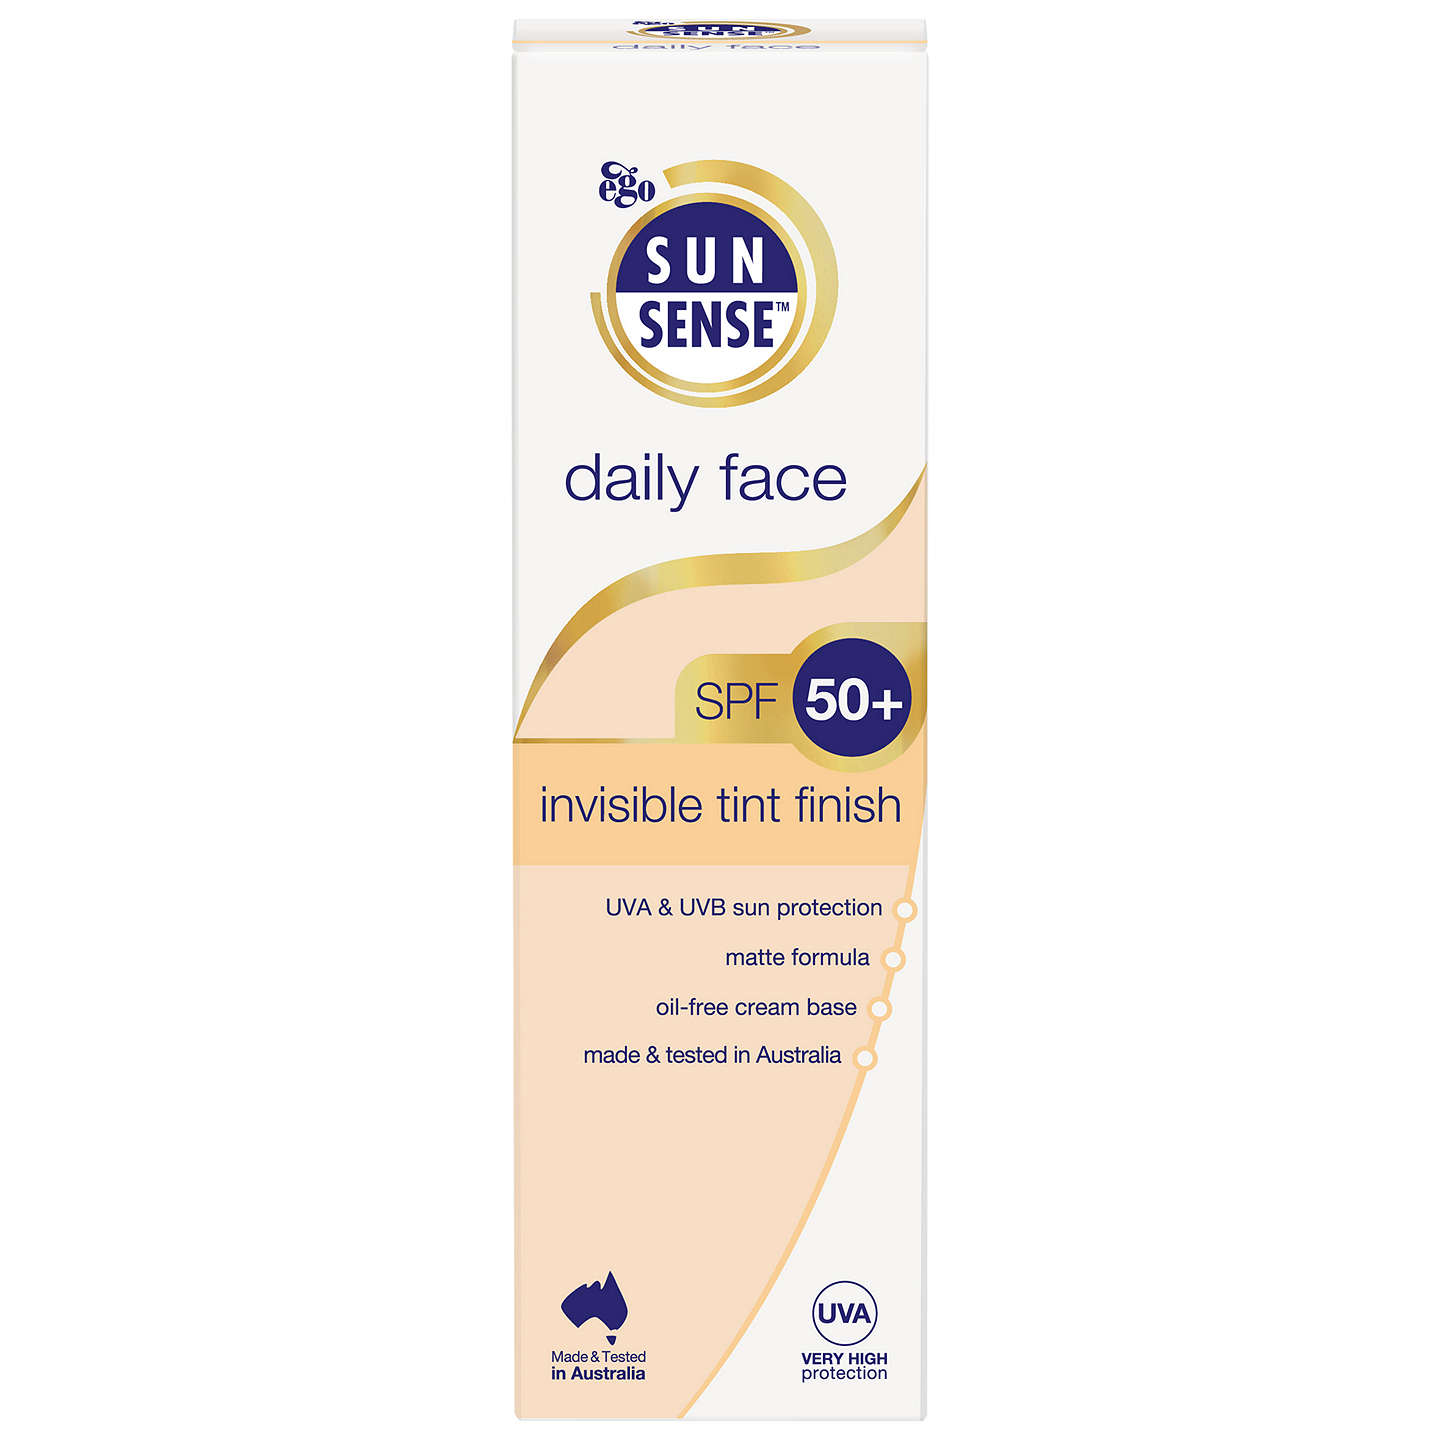 BuySunsense Daily Face Invisible Tint Finish SPF 50+ Sunscreen, 75ml Online at johnlewis.com